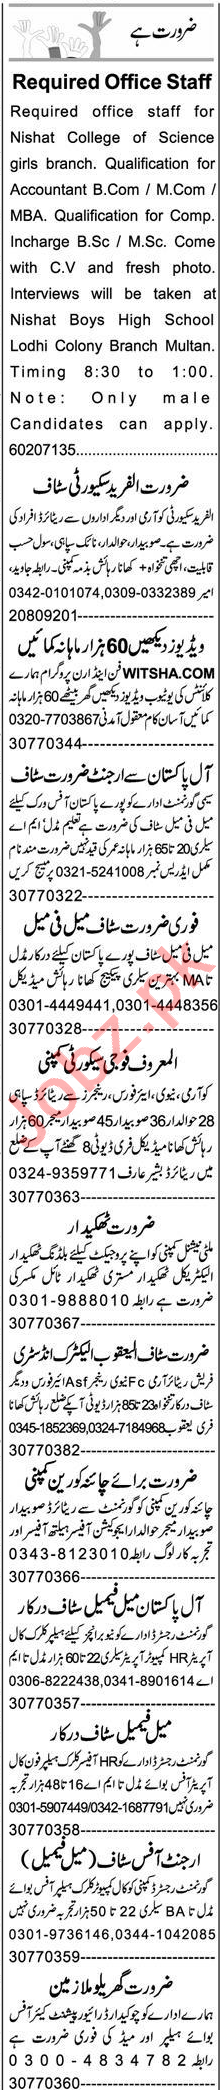 Accounting Officer & Promotion Officer Jobs 2021 in Multan